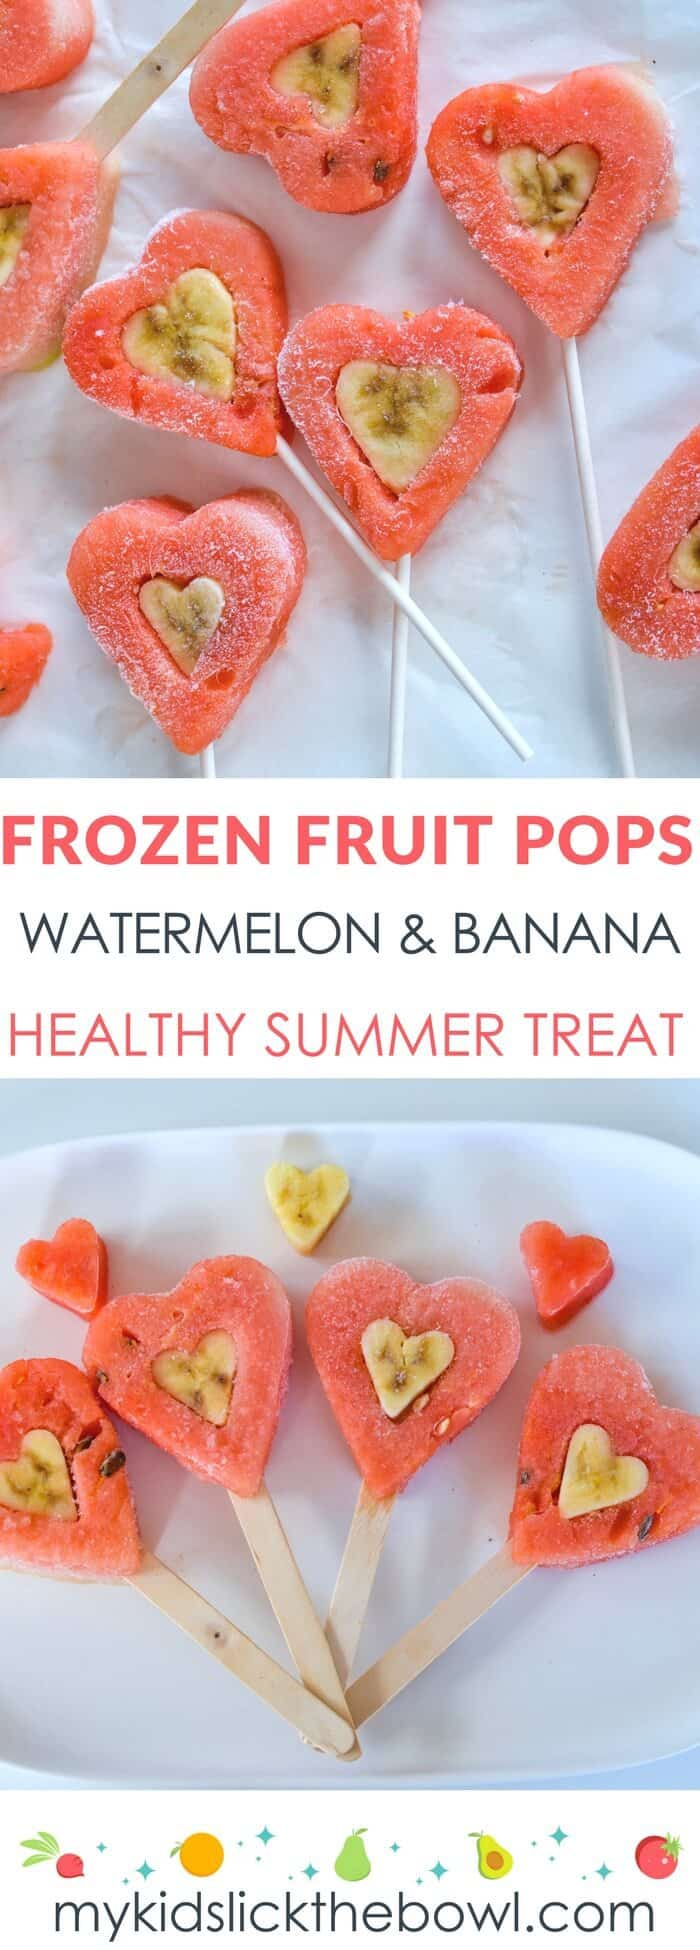 Frozen Fruit Pops, Heart Shaped Healthy Summer treat for kids made with watermelon and banana,